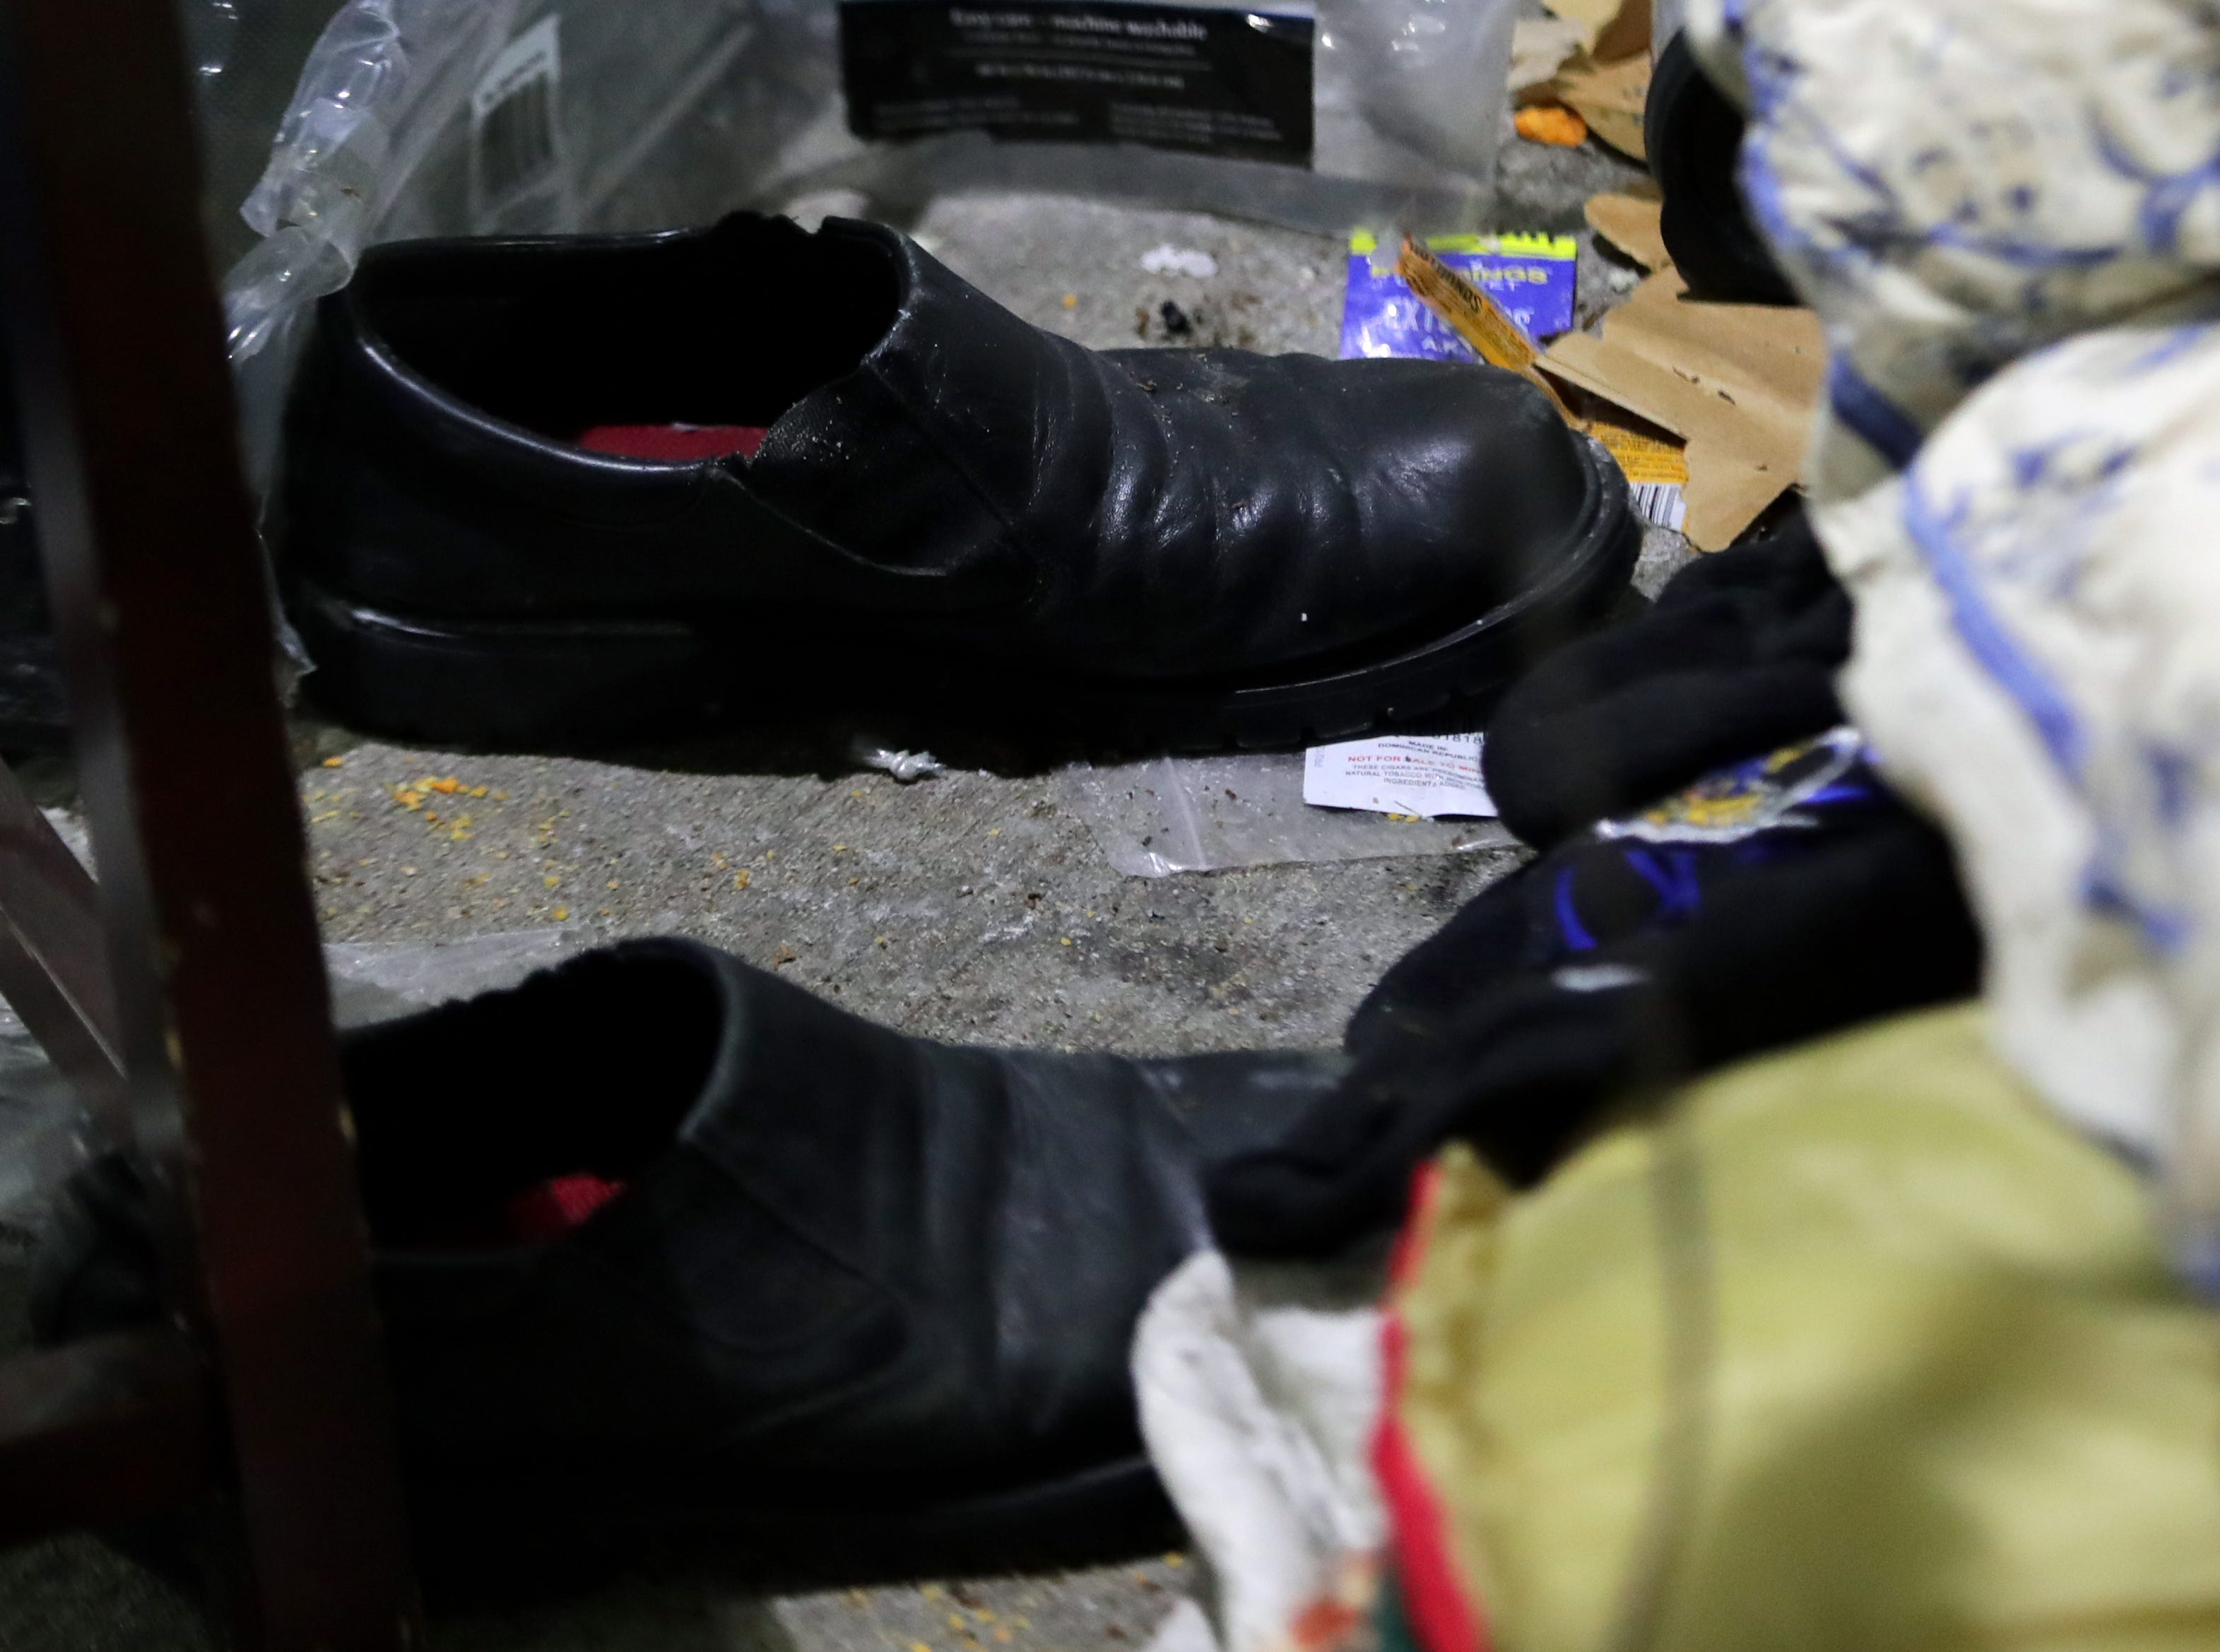 """Belongings of Brian, a homeless man that goes by """"Detroit,"""" that lives under under the viaduct on Jefferson between Preston and Jackson. Jan. 31, 2019"""